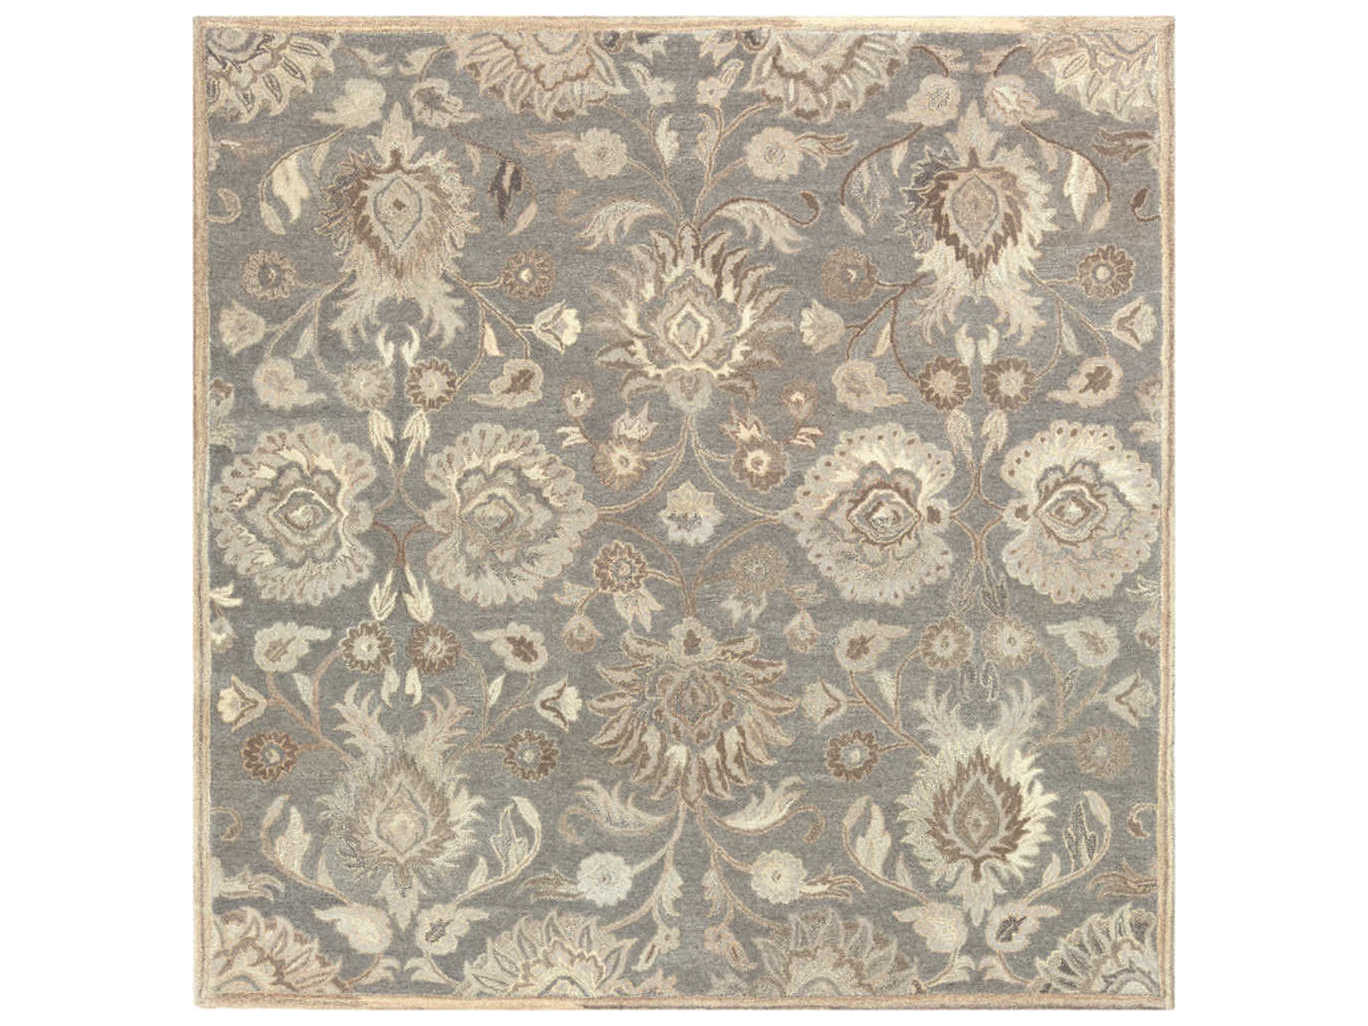 Surya Caesar Taupe Camel Cream Light Gray Dark Brown Square Area Rug